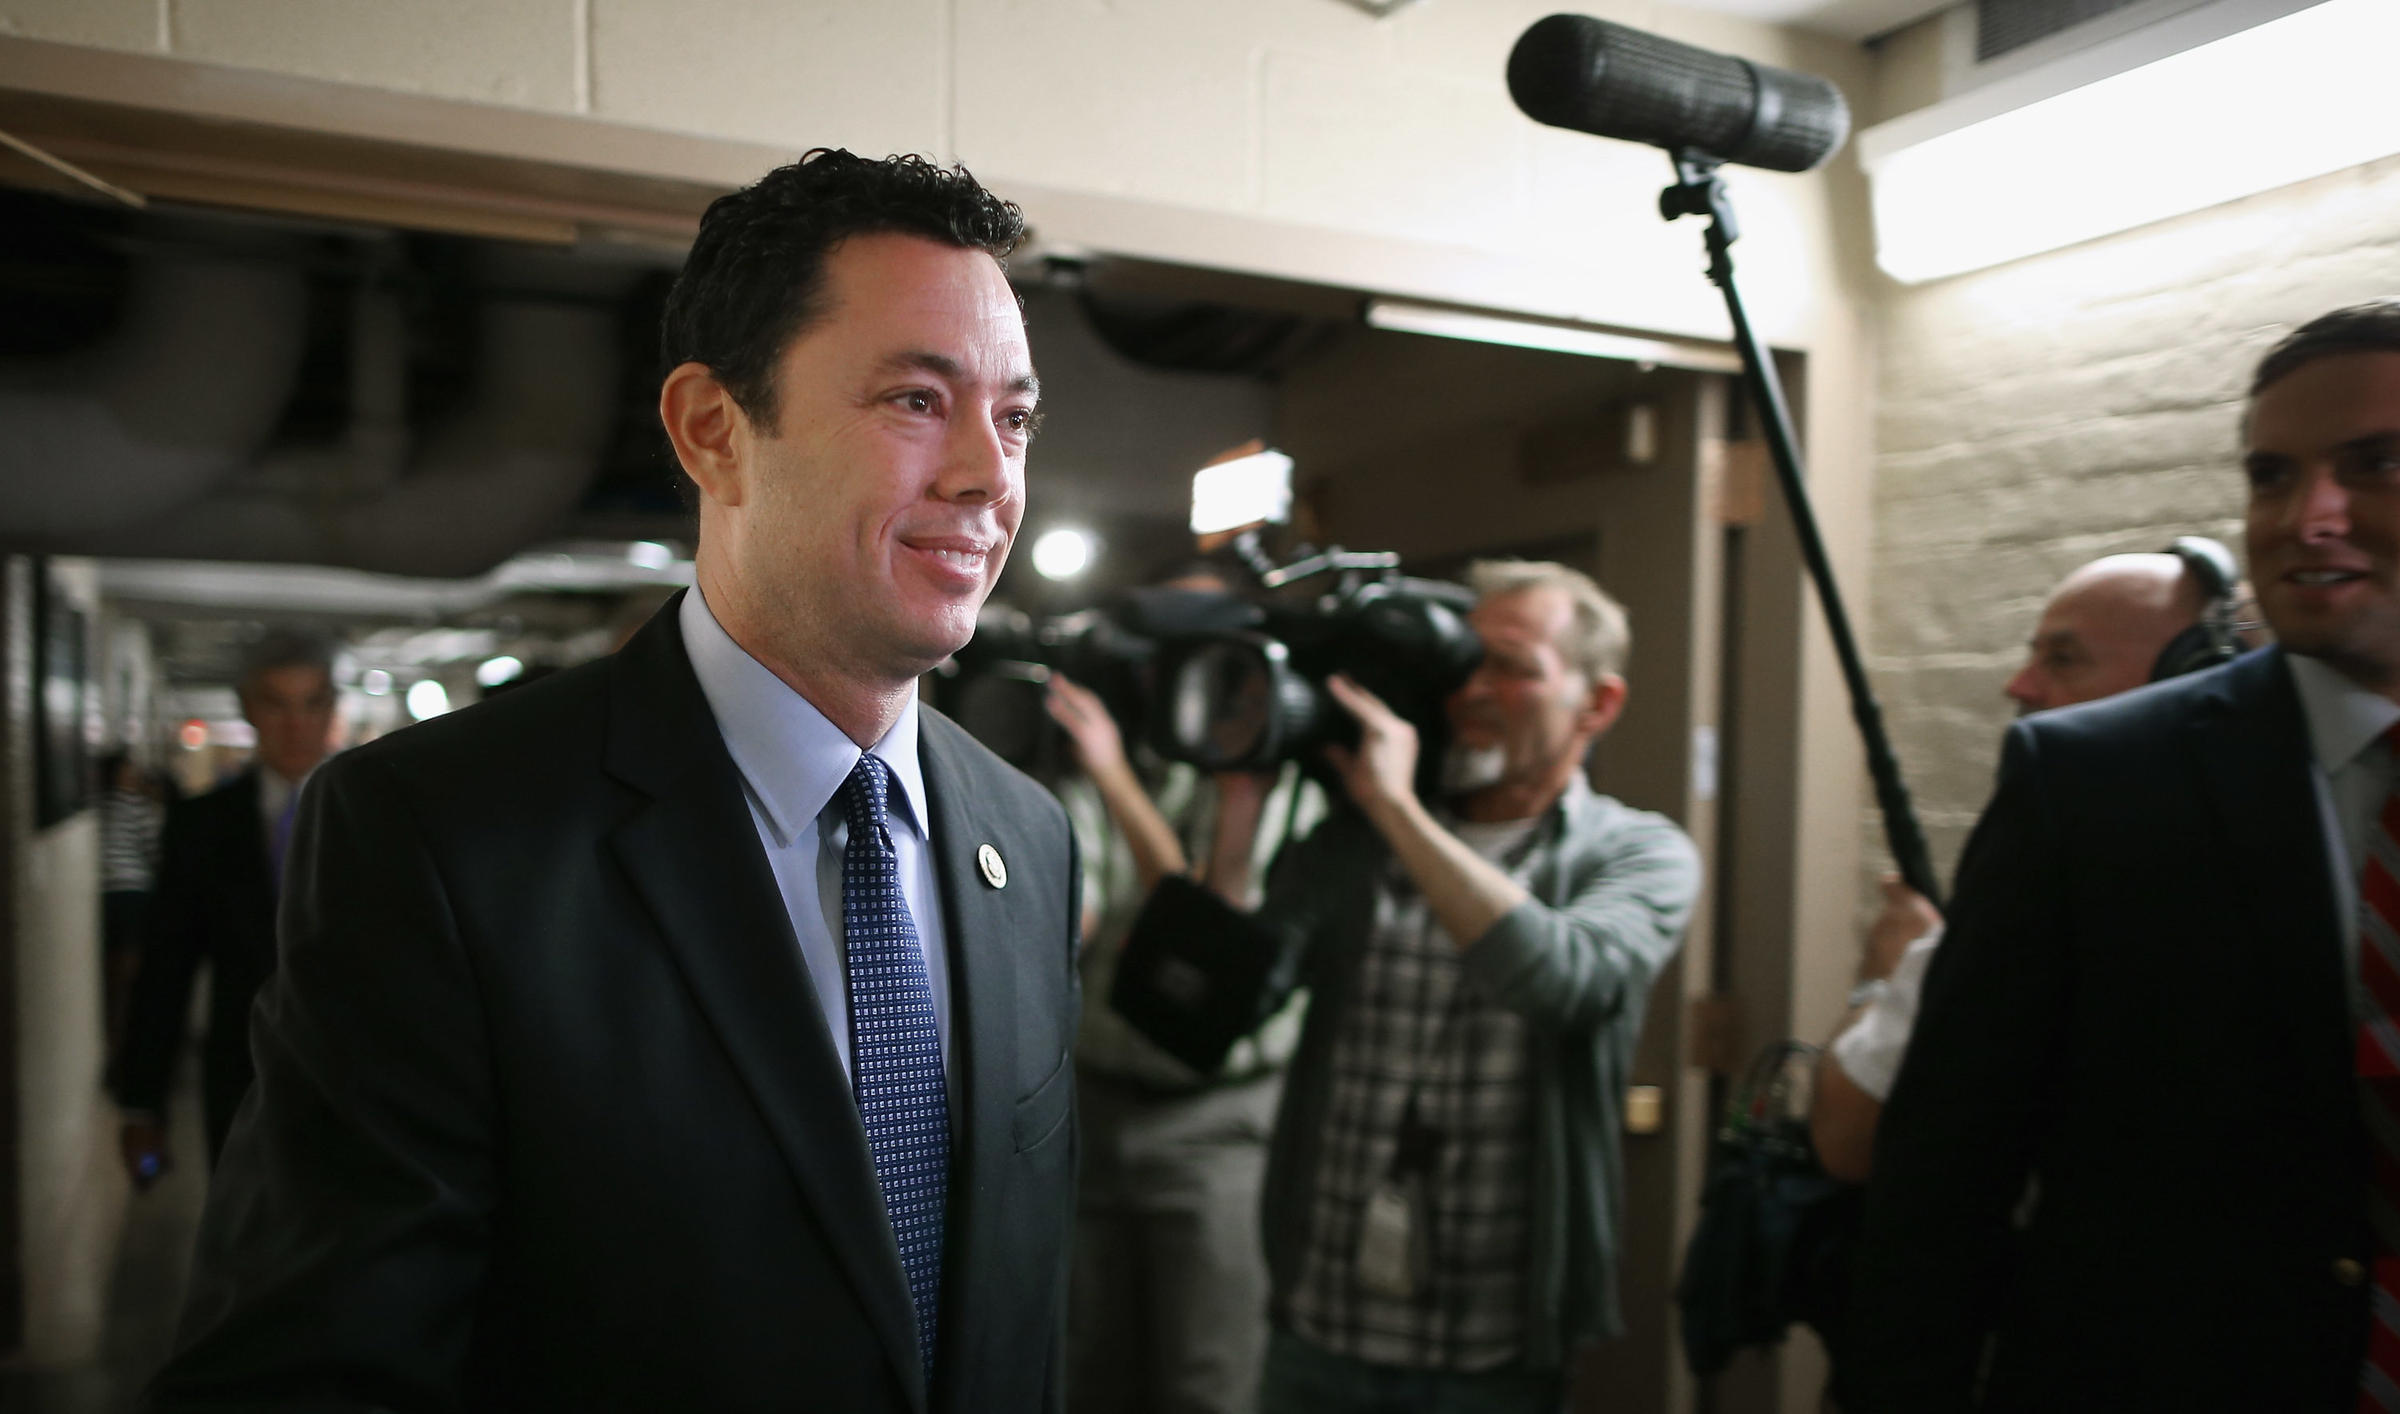 Chaffetz resigning from Congress as of June 30